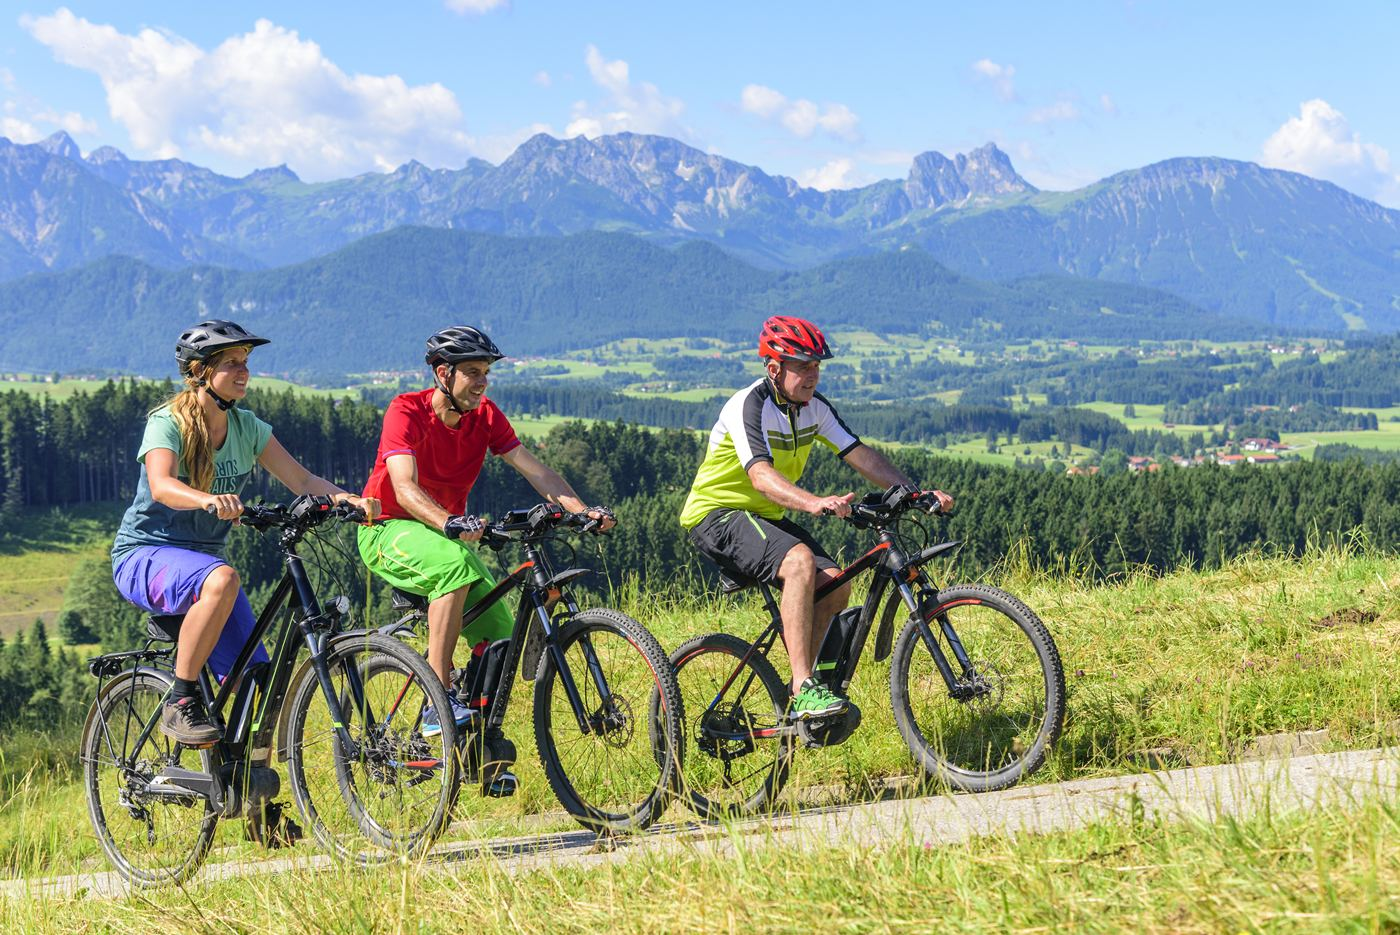 E-bike: everything you need to know about pedal assist bicycles